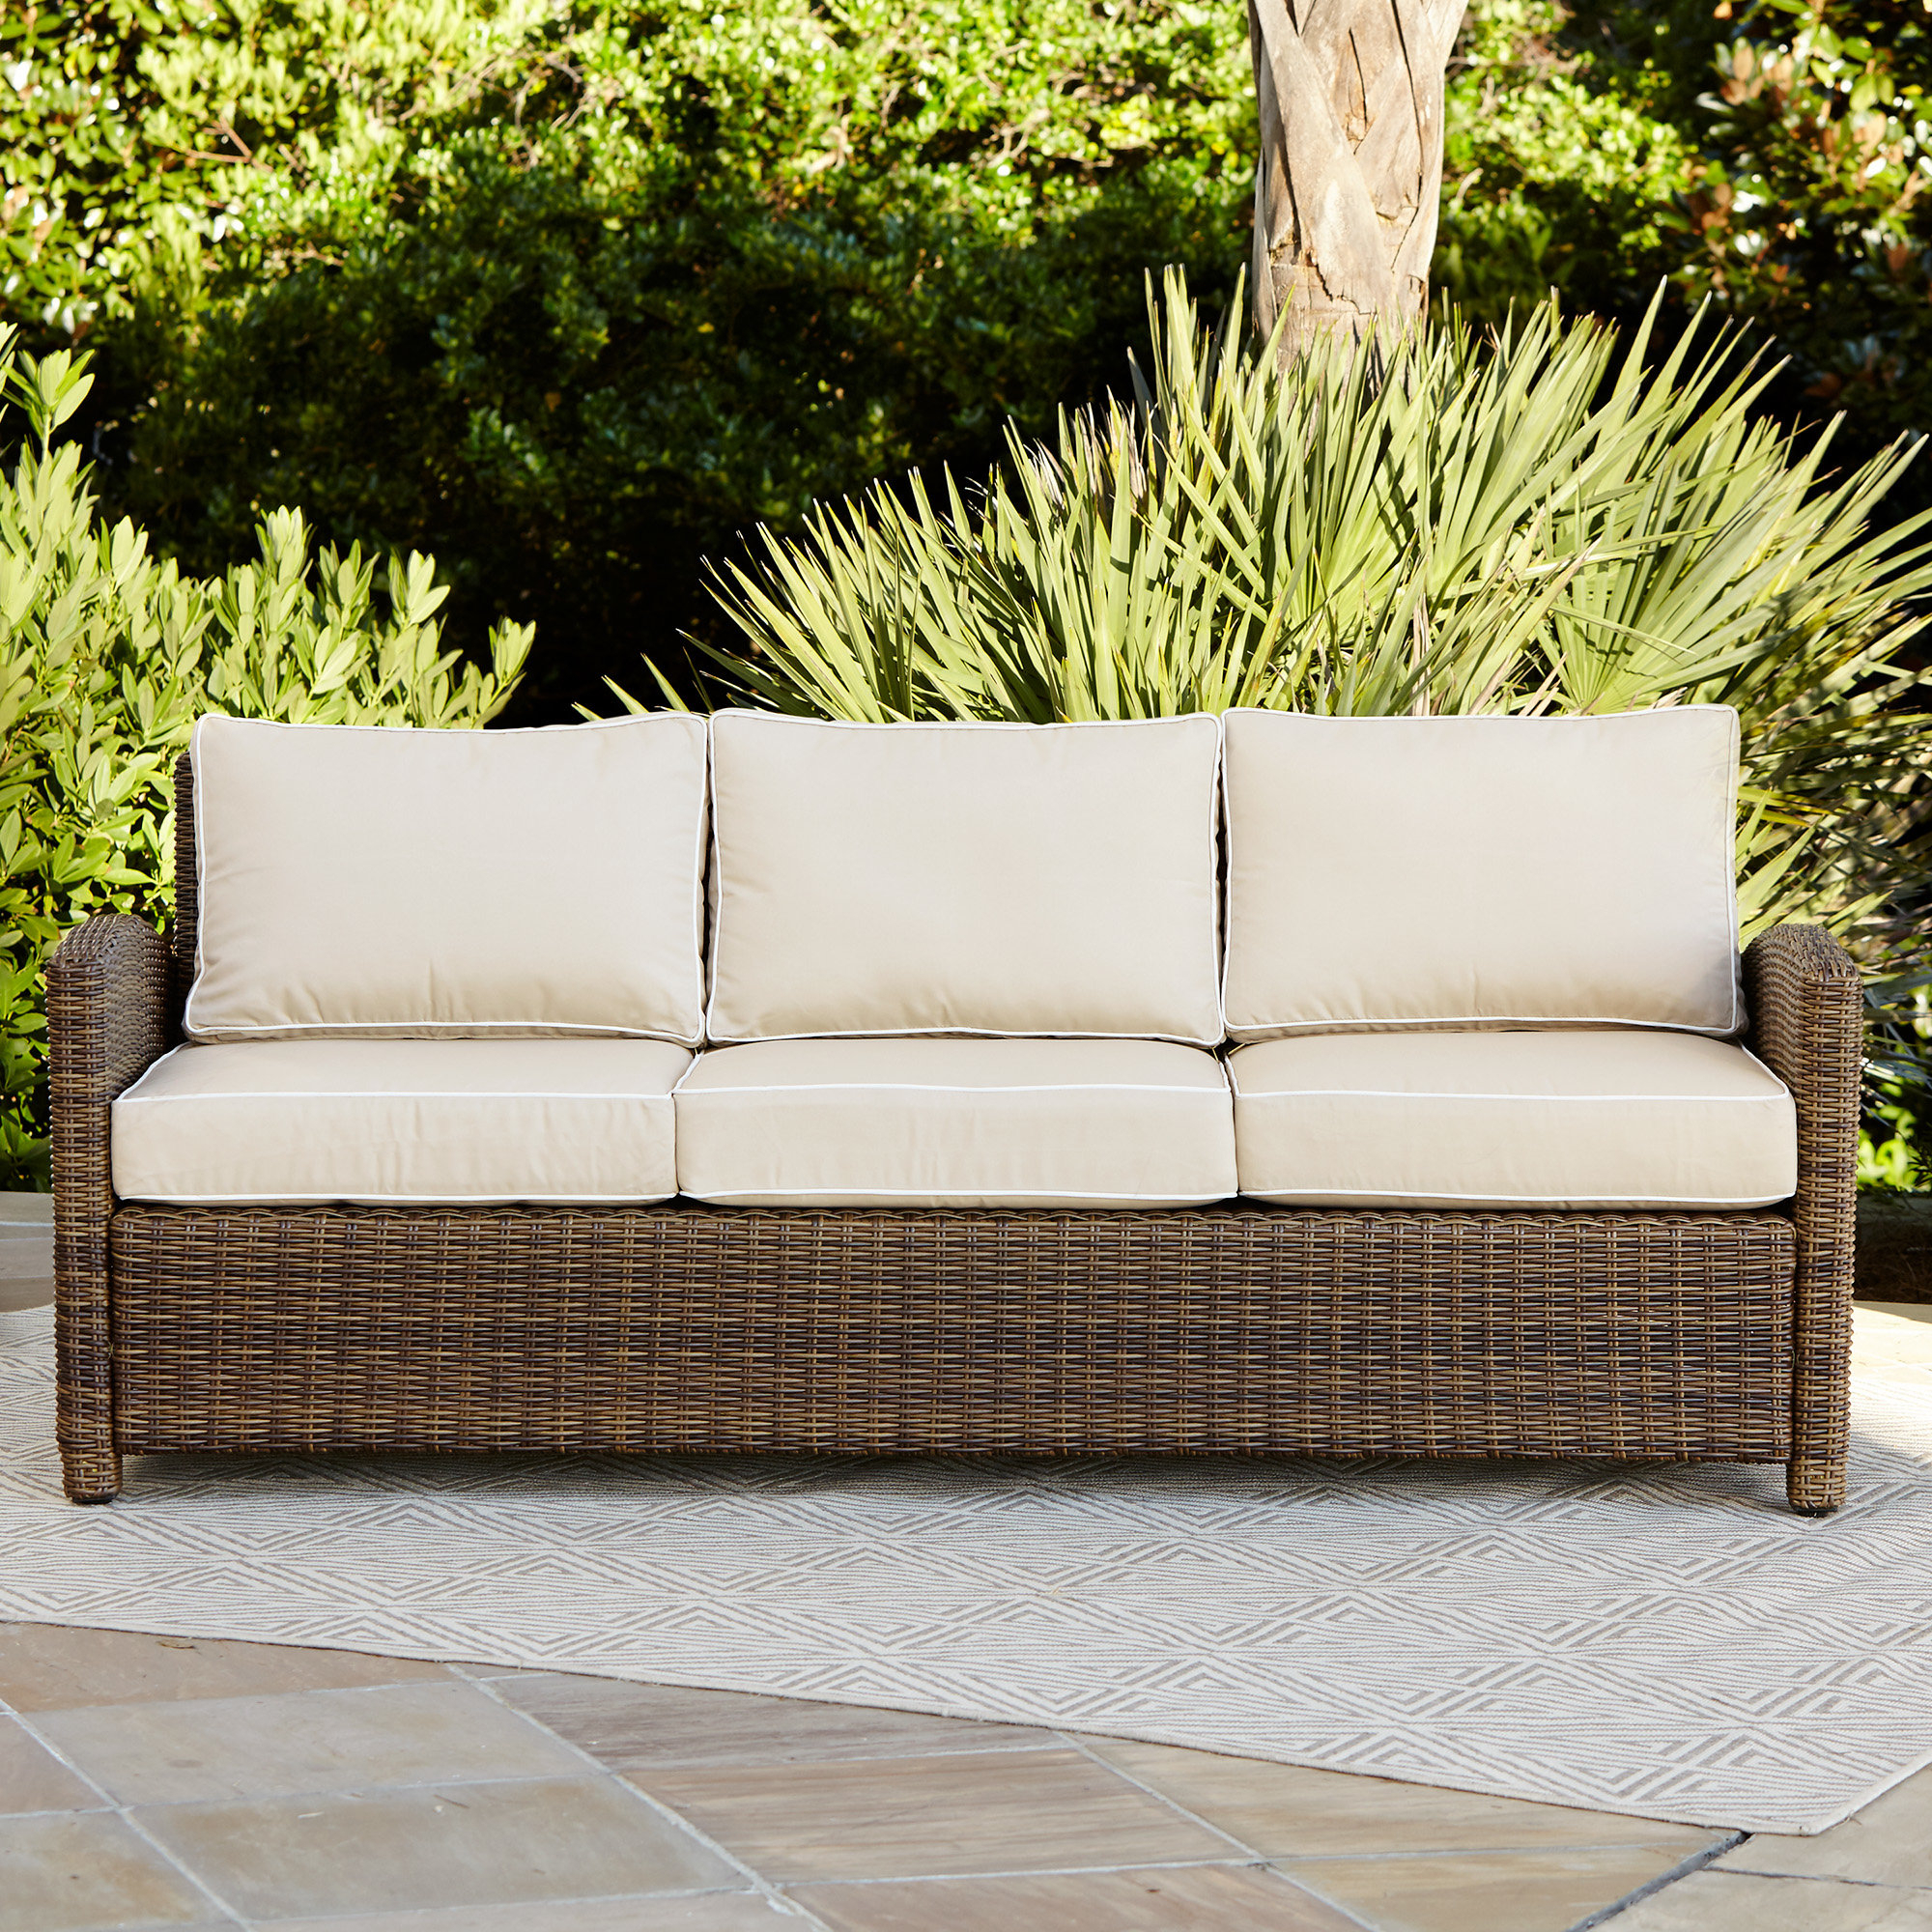 Farmhouse & Rustic Outdoor Sofas (View 6 of 20)